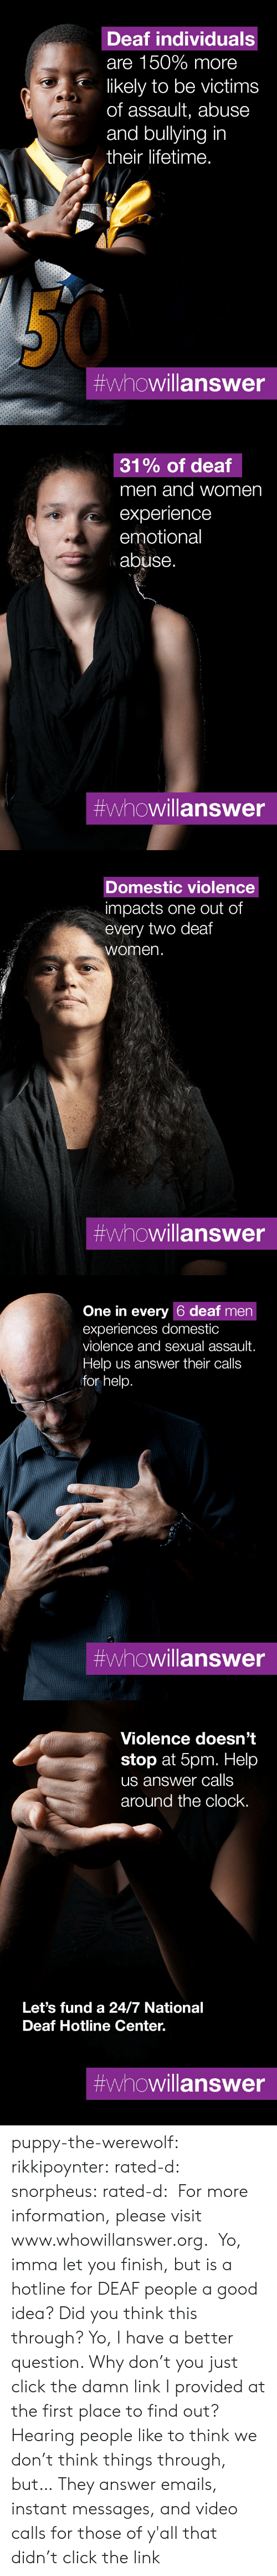 assault: Deaf individuals  are 150% more  likely to be victims  of assault, abuse  and bullying in  their lifetime.  #whowillanswer   31% of deaf  men and women  experience  emotional  abuse.  #whowillanswer   Domestic violence  impacts one out of  every two deaf  women.  #whowillanswer   One in every 6 deaf men  experiences domestic  violence and sexual assault.  Help us answer their calls  for help.  #whowillanswer   Violence doesn't  stop at 5pm. Help  us answer calls  around the clock.  Let's fund a 24/7 National  Deaf Hotline Center.  puppy-the-werewolf: rikkipoynter:  rated-d:  snorpheus:  rated-d:   For more information, please visit www.whowillanswer.org.   Yo, imma let you finish, but is a hotline for DEAF people a good idea? Did you think this through?  Yo, I have a better question. Why don't you just click the damn link I provided at the first place to find out?     Hearing people like to think we don't think things through, but…   They answer emails, instant messages, and video calls for those of y'all that didn't click the link